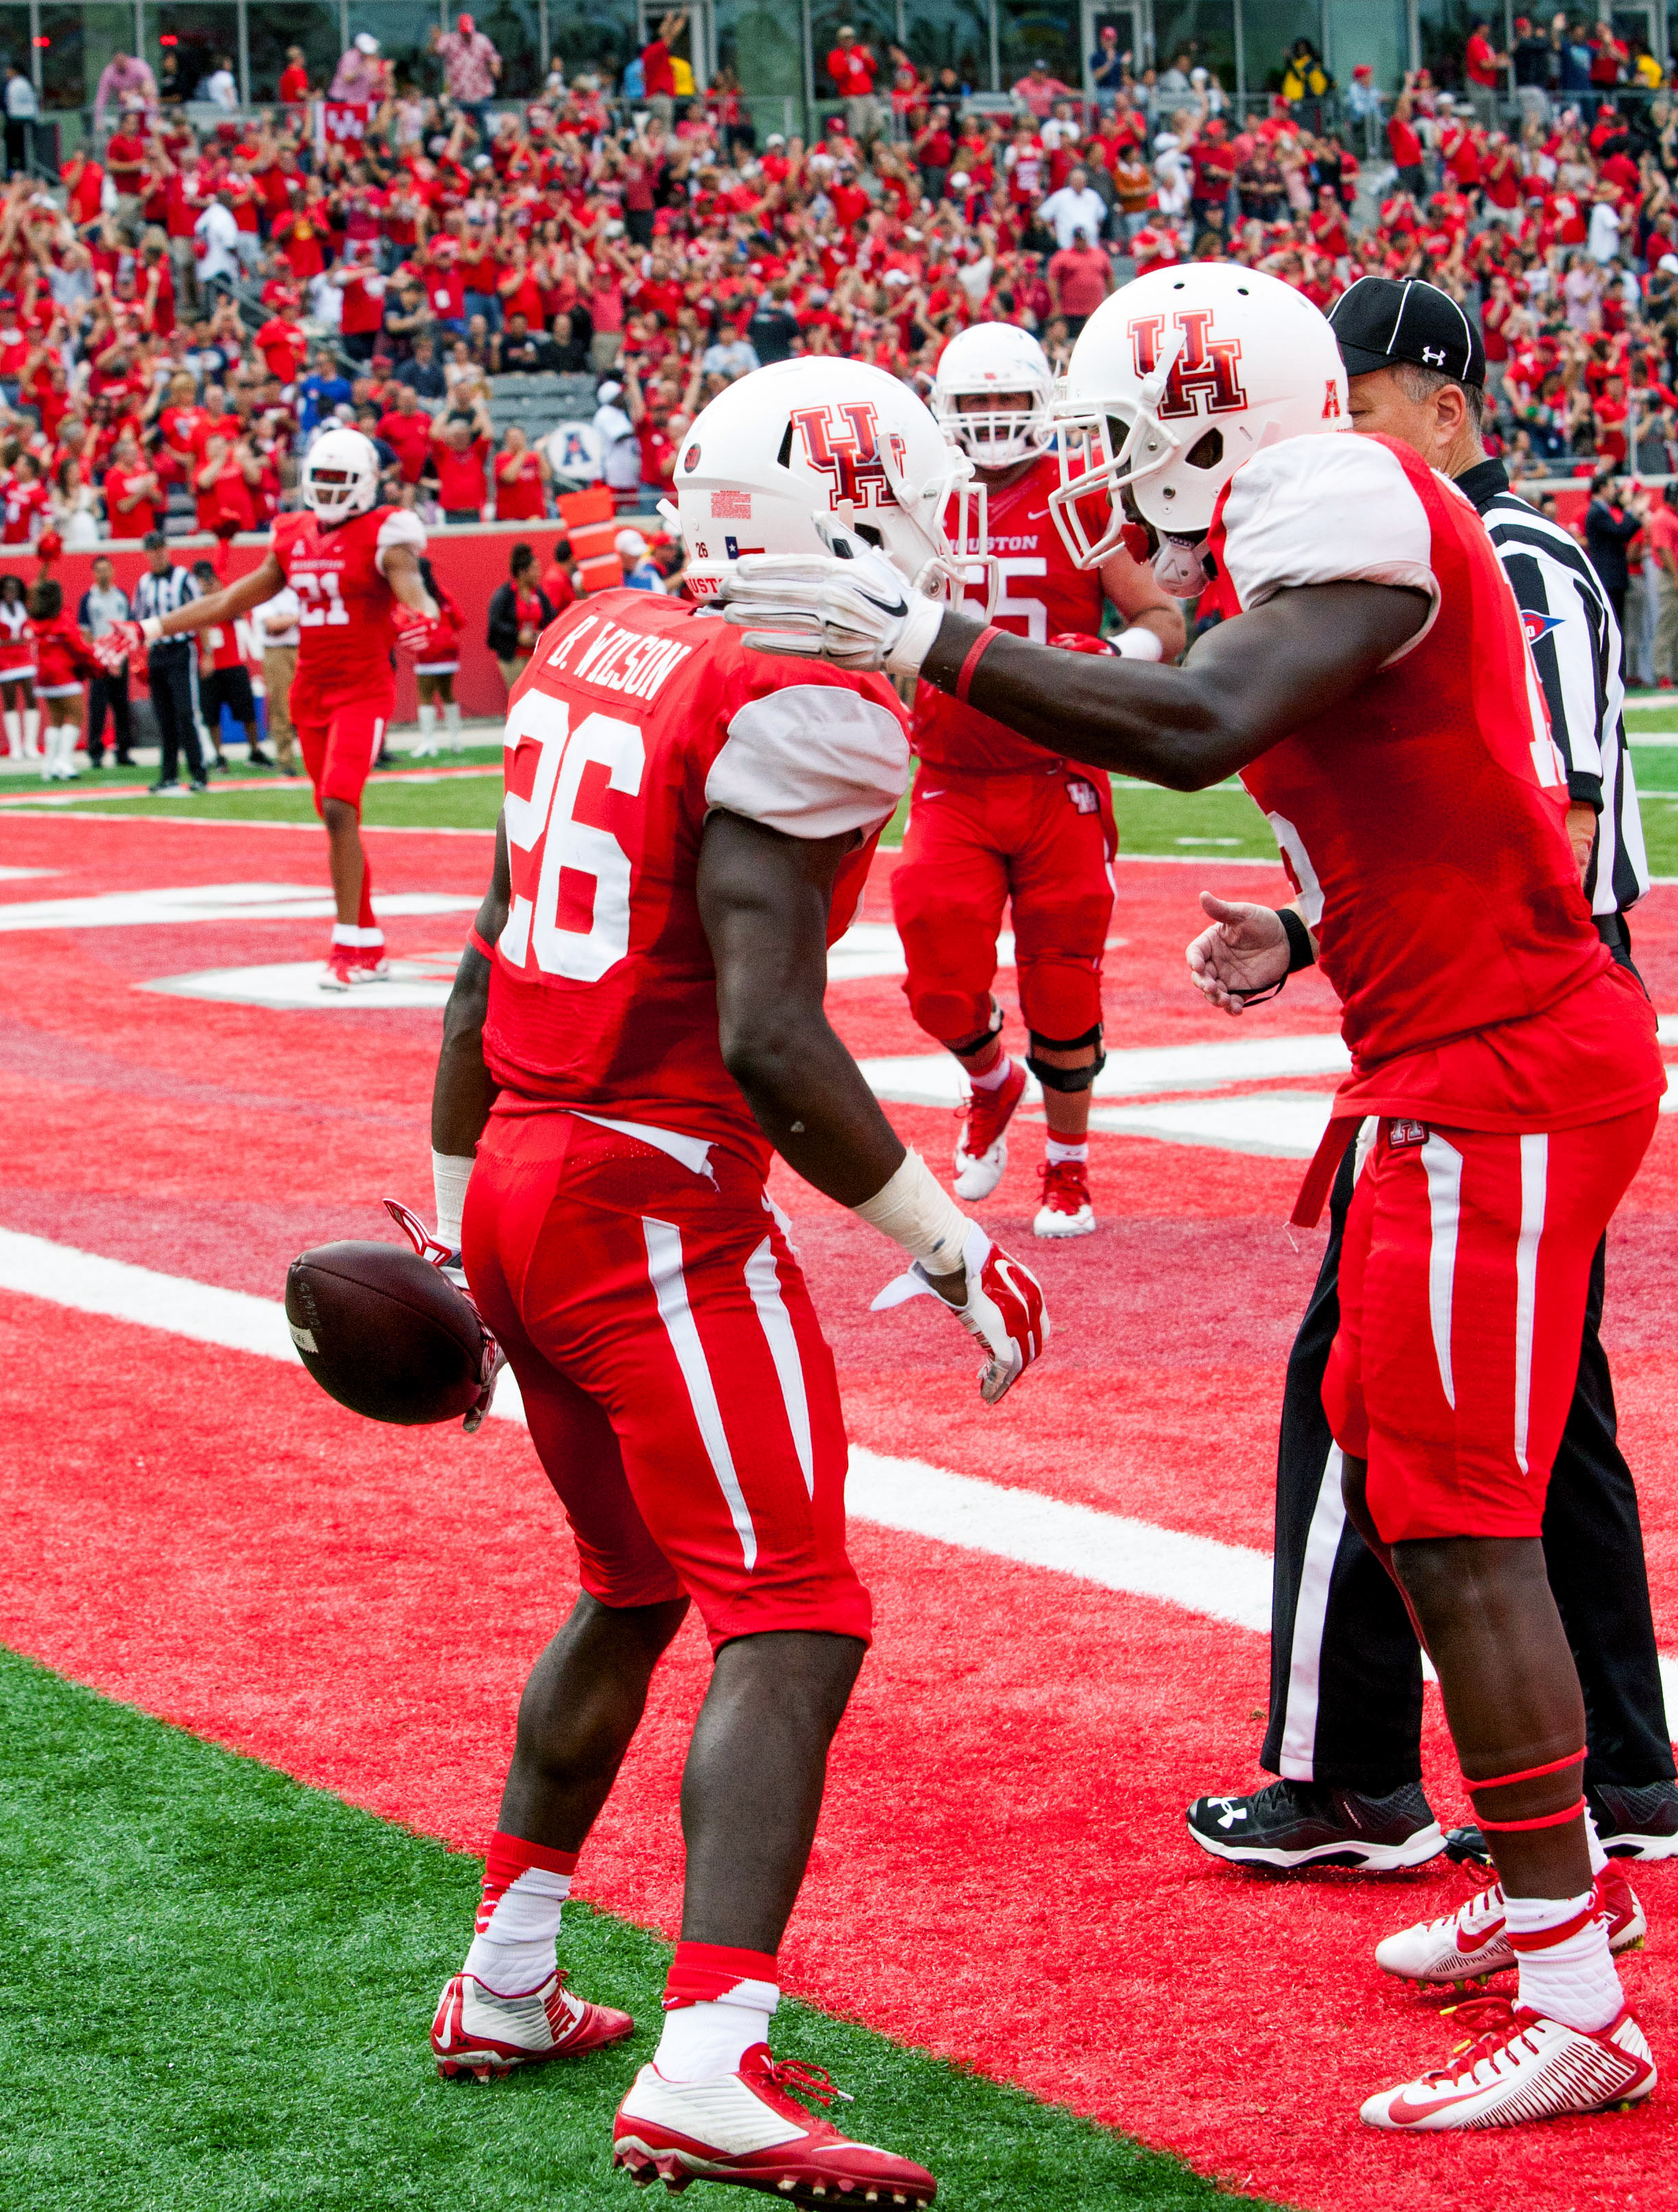 Houston's running back Tyreik Gray (26) celebrates with teammates in the end zone after scoring during the first quarter of an NCAA college football game against Navy Friday, Nov. 27, 2015, in Houston.  (AP Photo/Juan DeLeon)